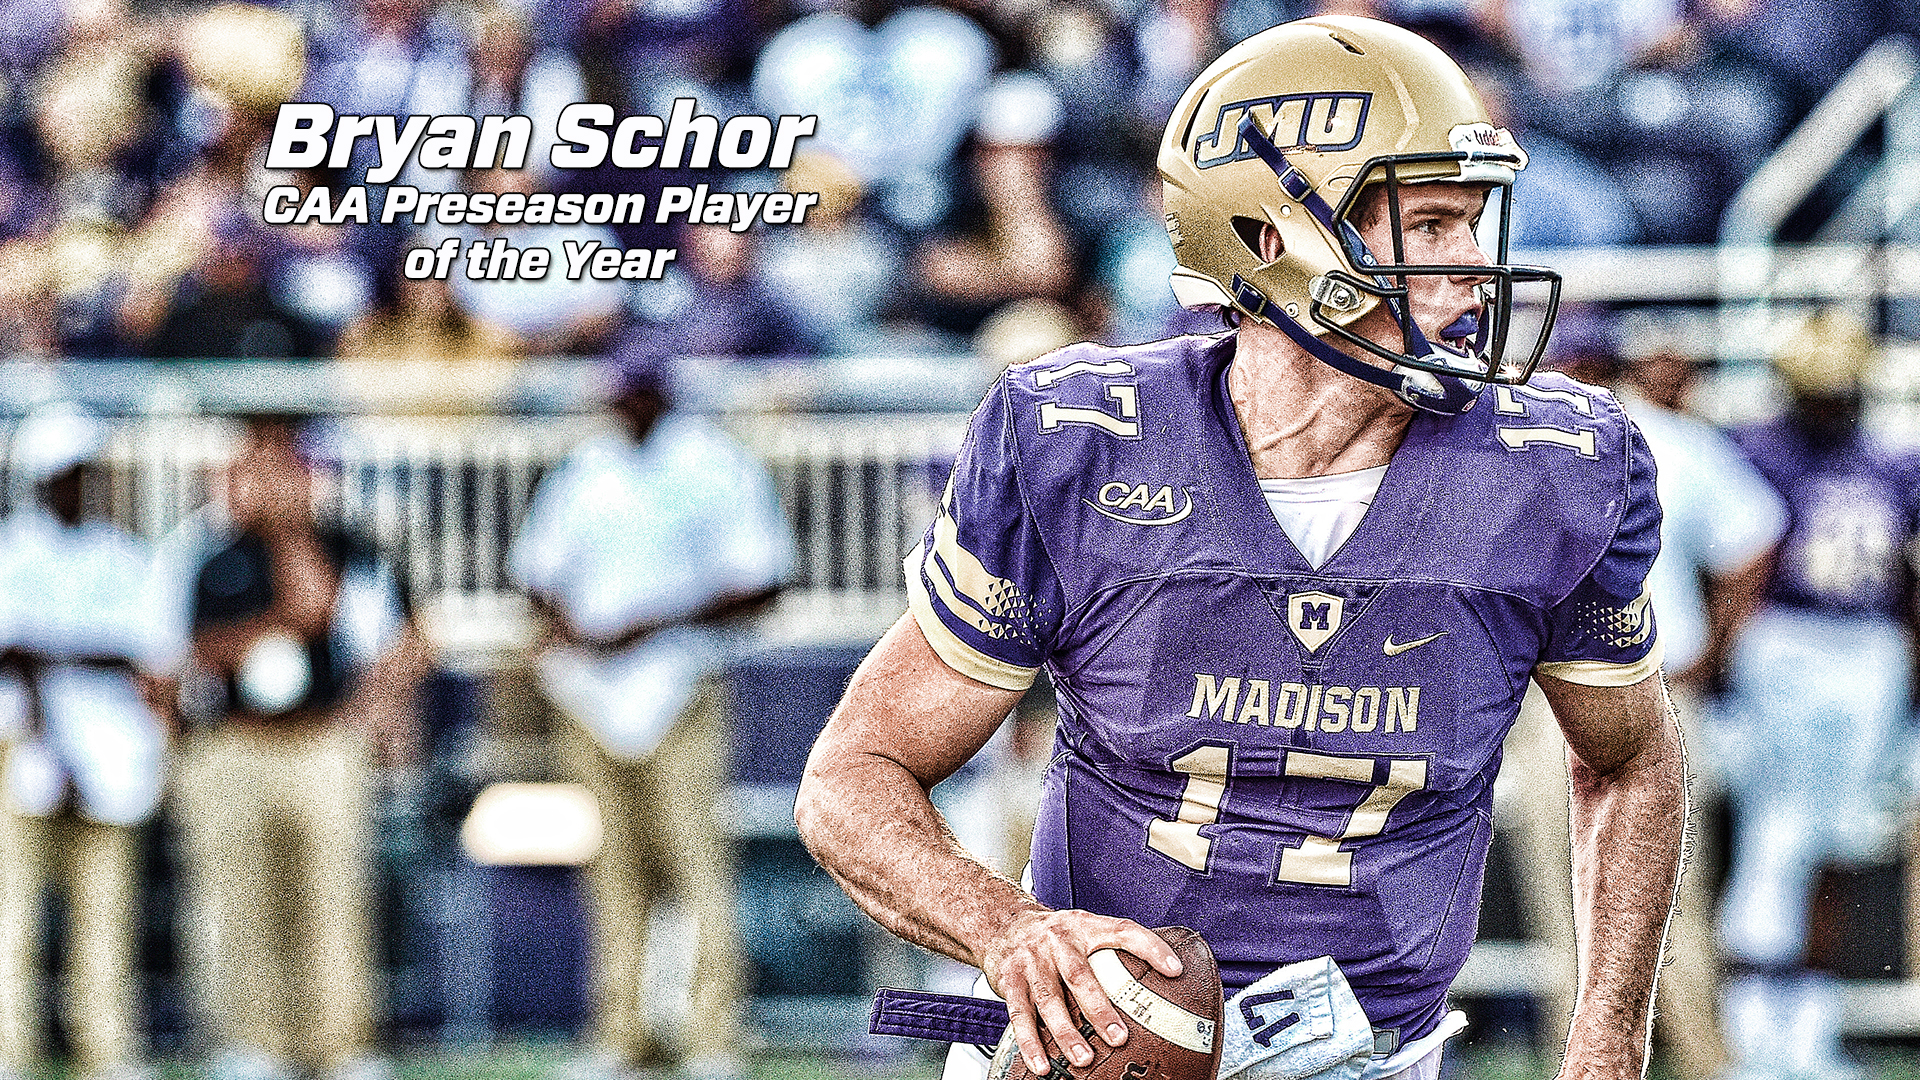 Football: JMU Picked to Win CAA, Schor Voted CAA Preseason Player of the Year)